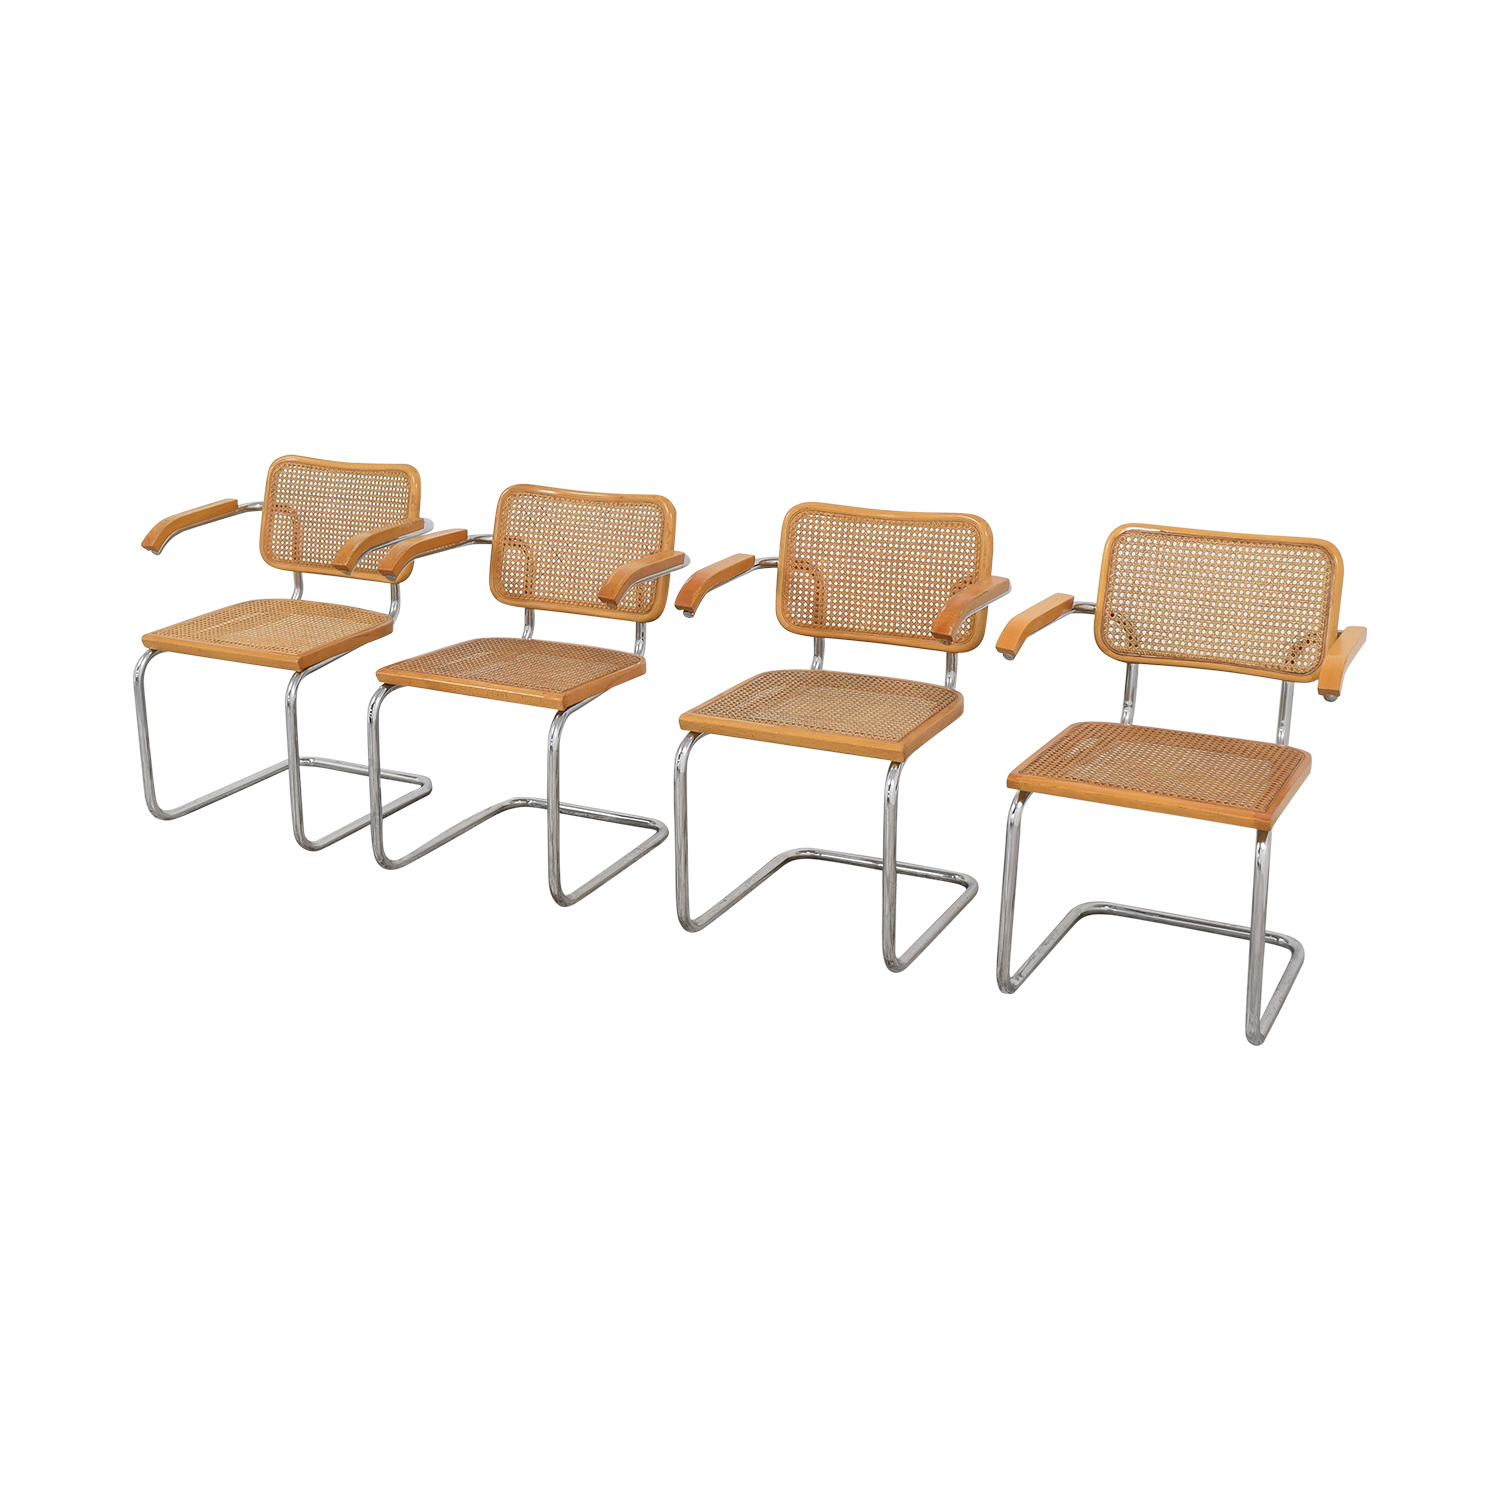 Scandinavian Designs Scandinavian Designs Bendt Dining Arm Chairs price